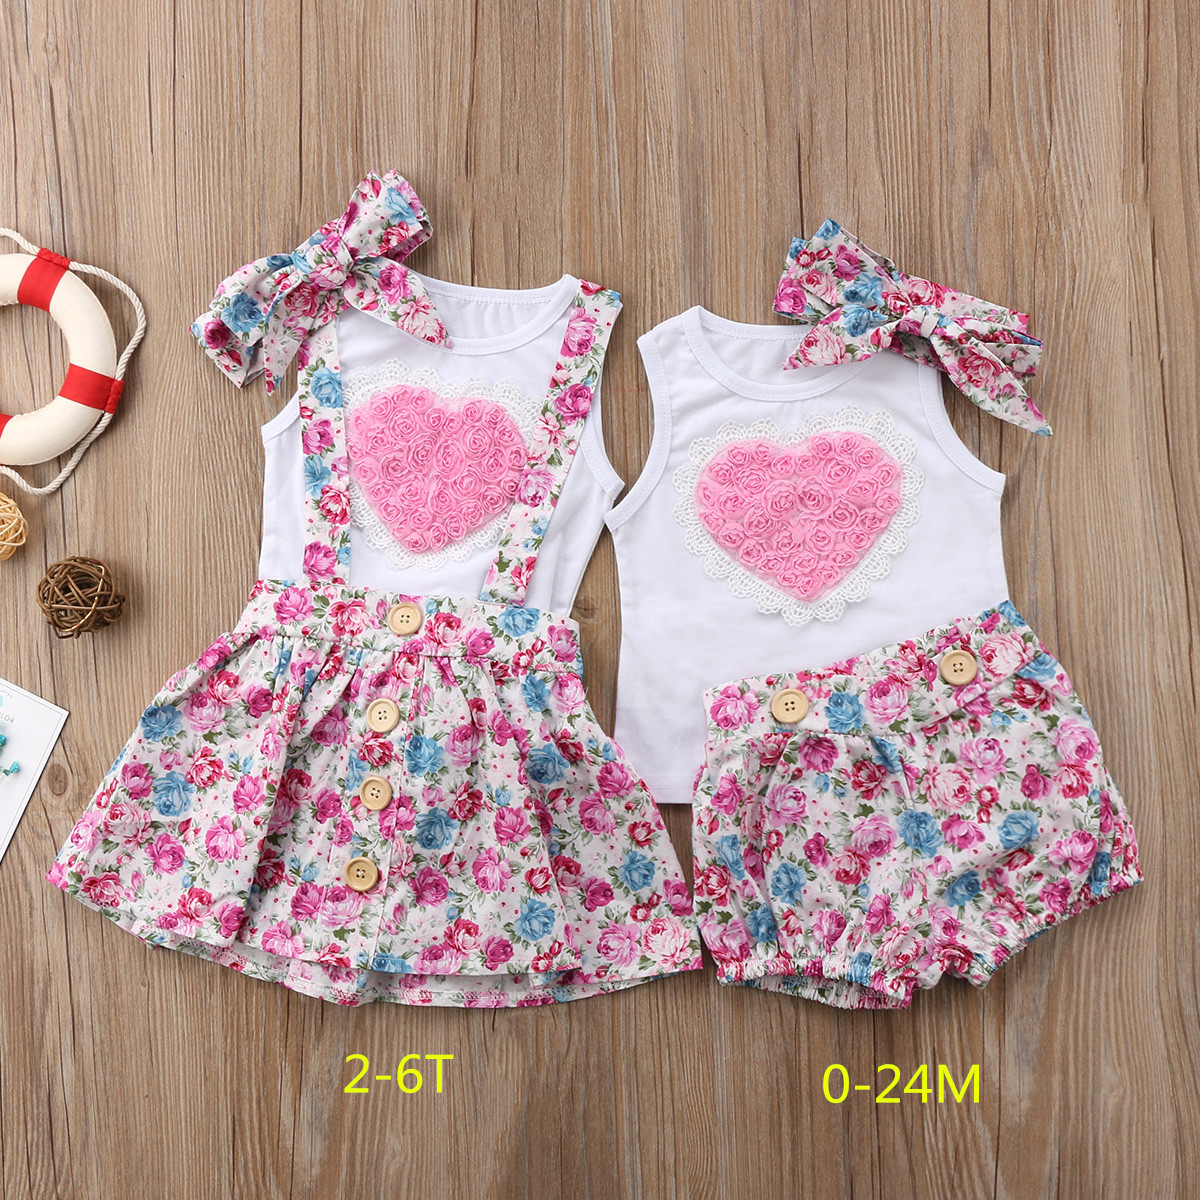 2018 Newborn Baby Girl Sister Matching Outfit Clothes